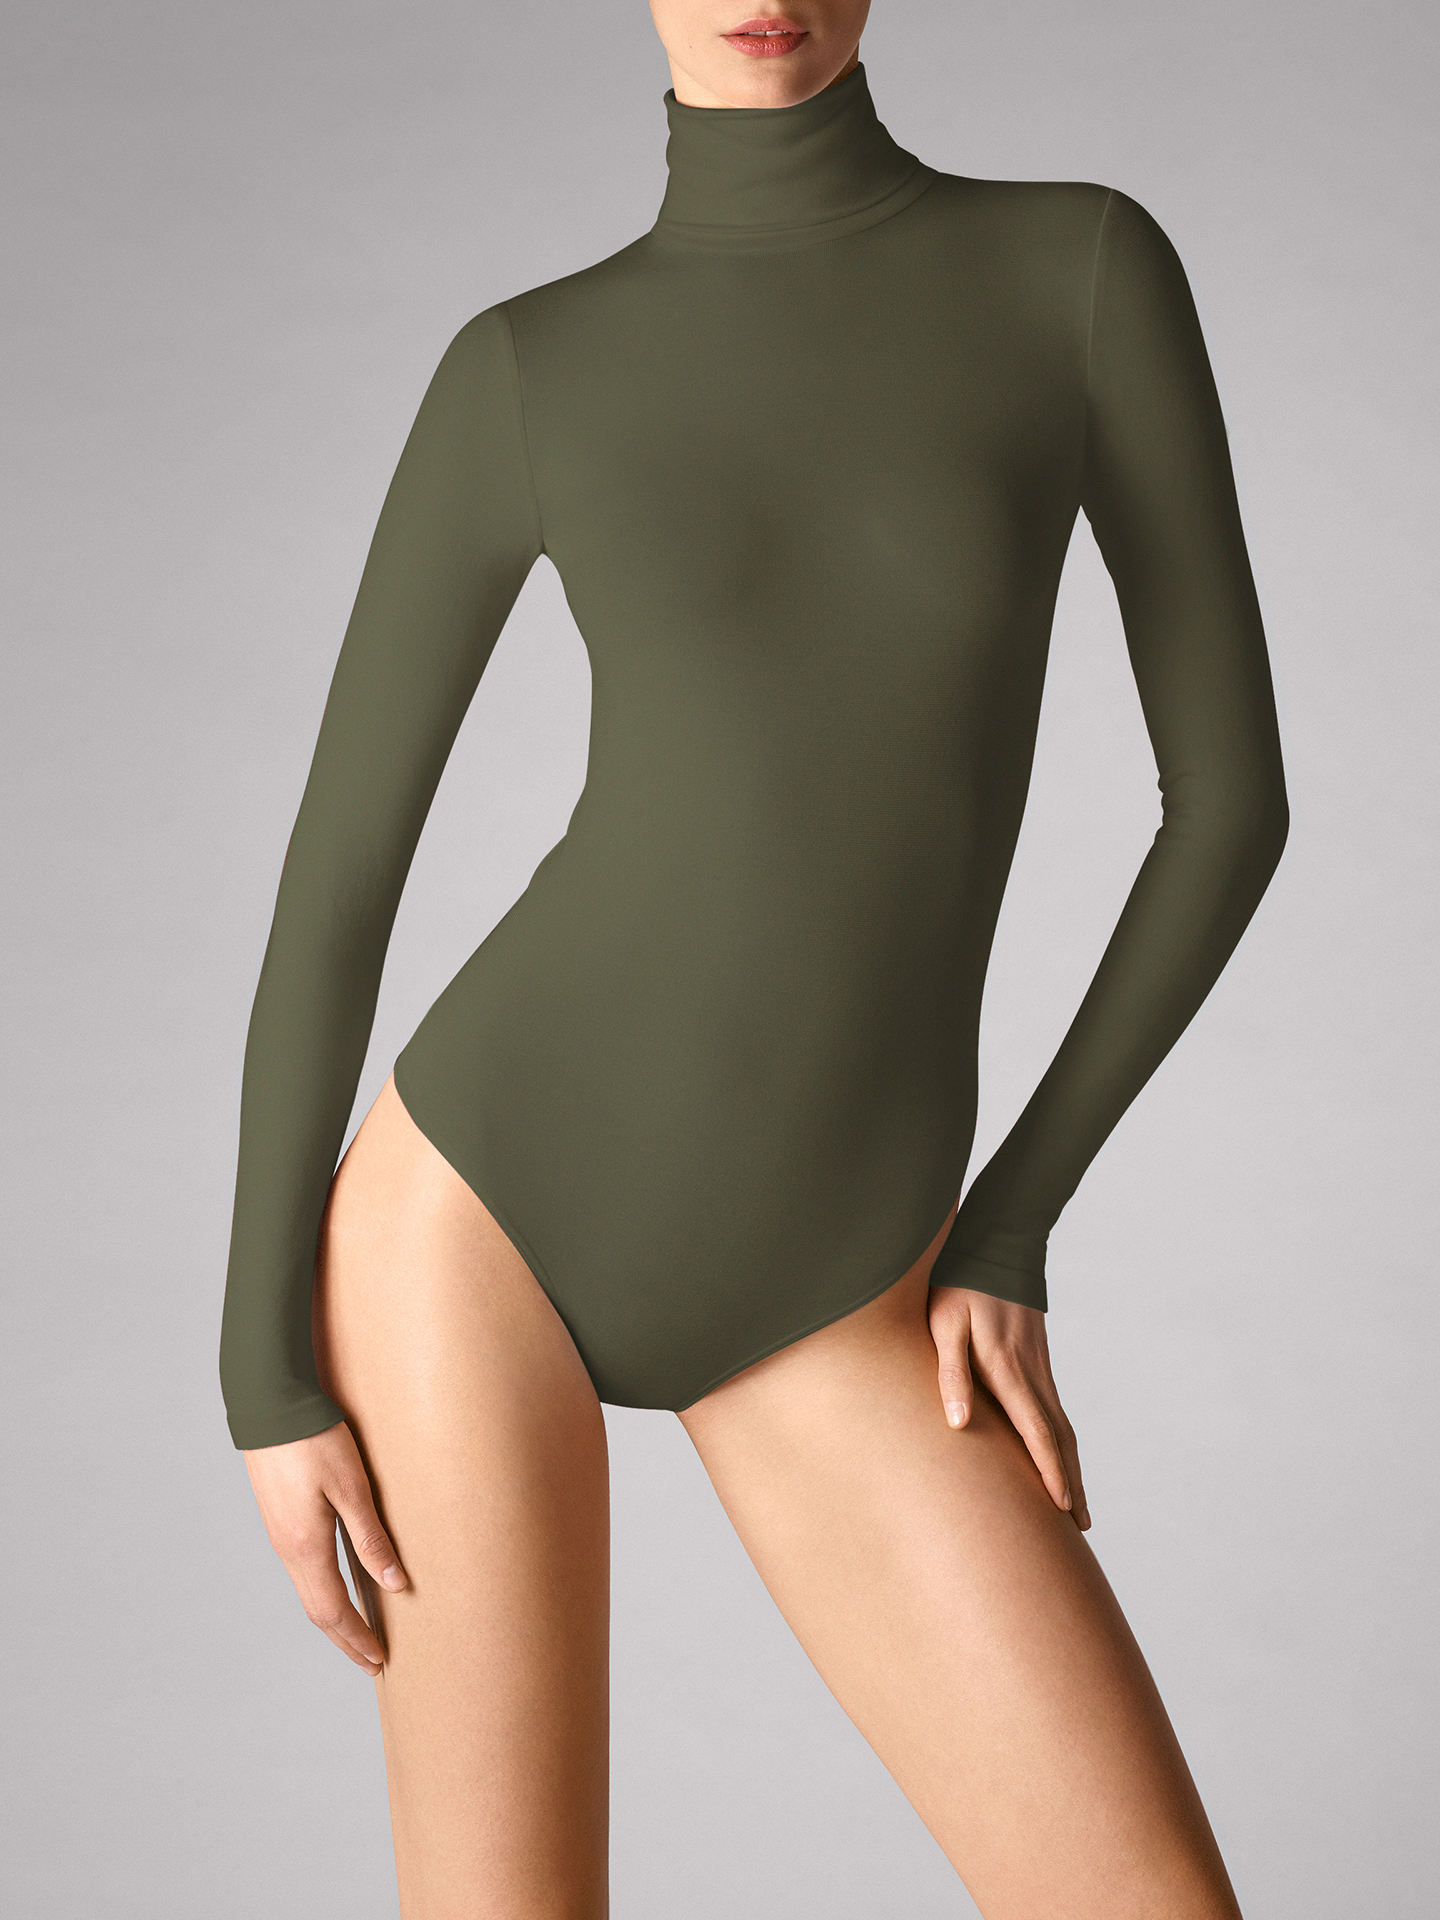 Wolford Apparel & Accessories > Clothing > Bestsellers Colorado String Body